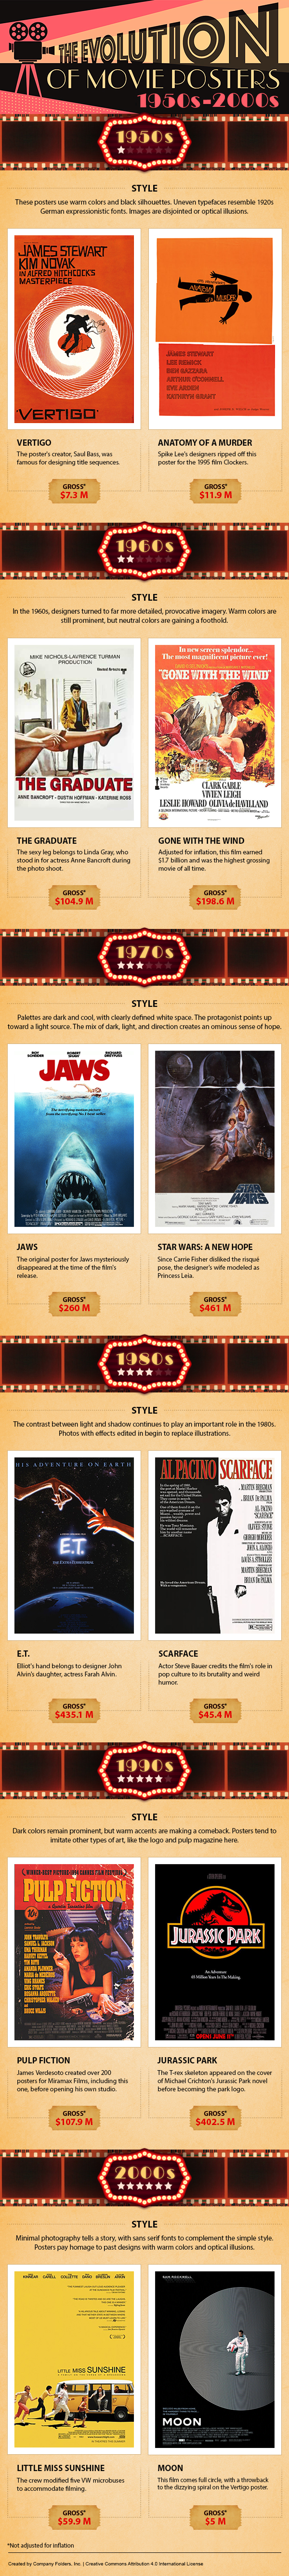 The Evolution of Movie Poster Design